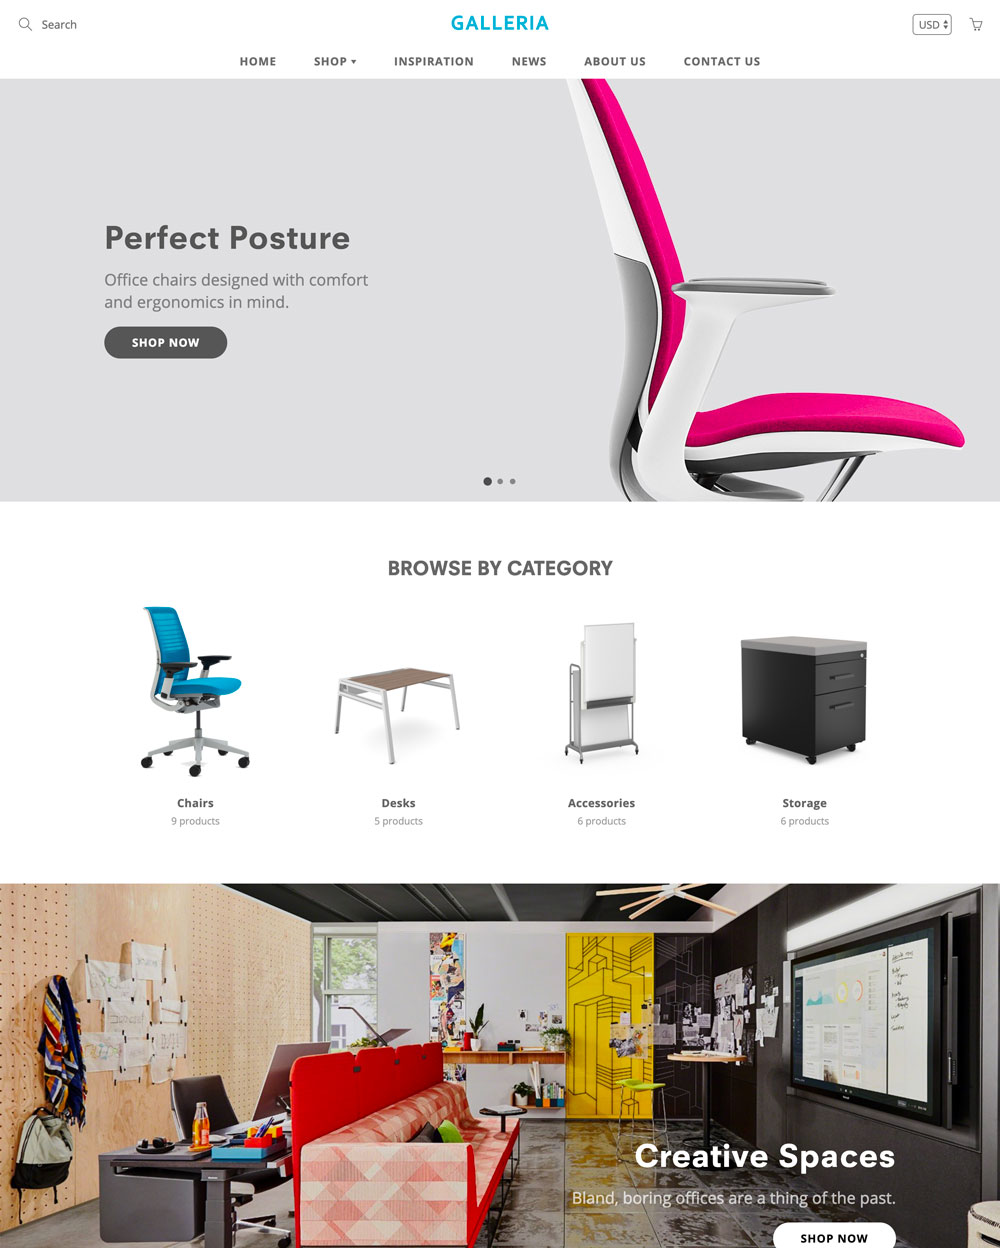 showroom theme galleria ecommerce website template